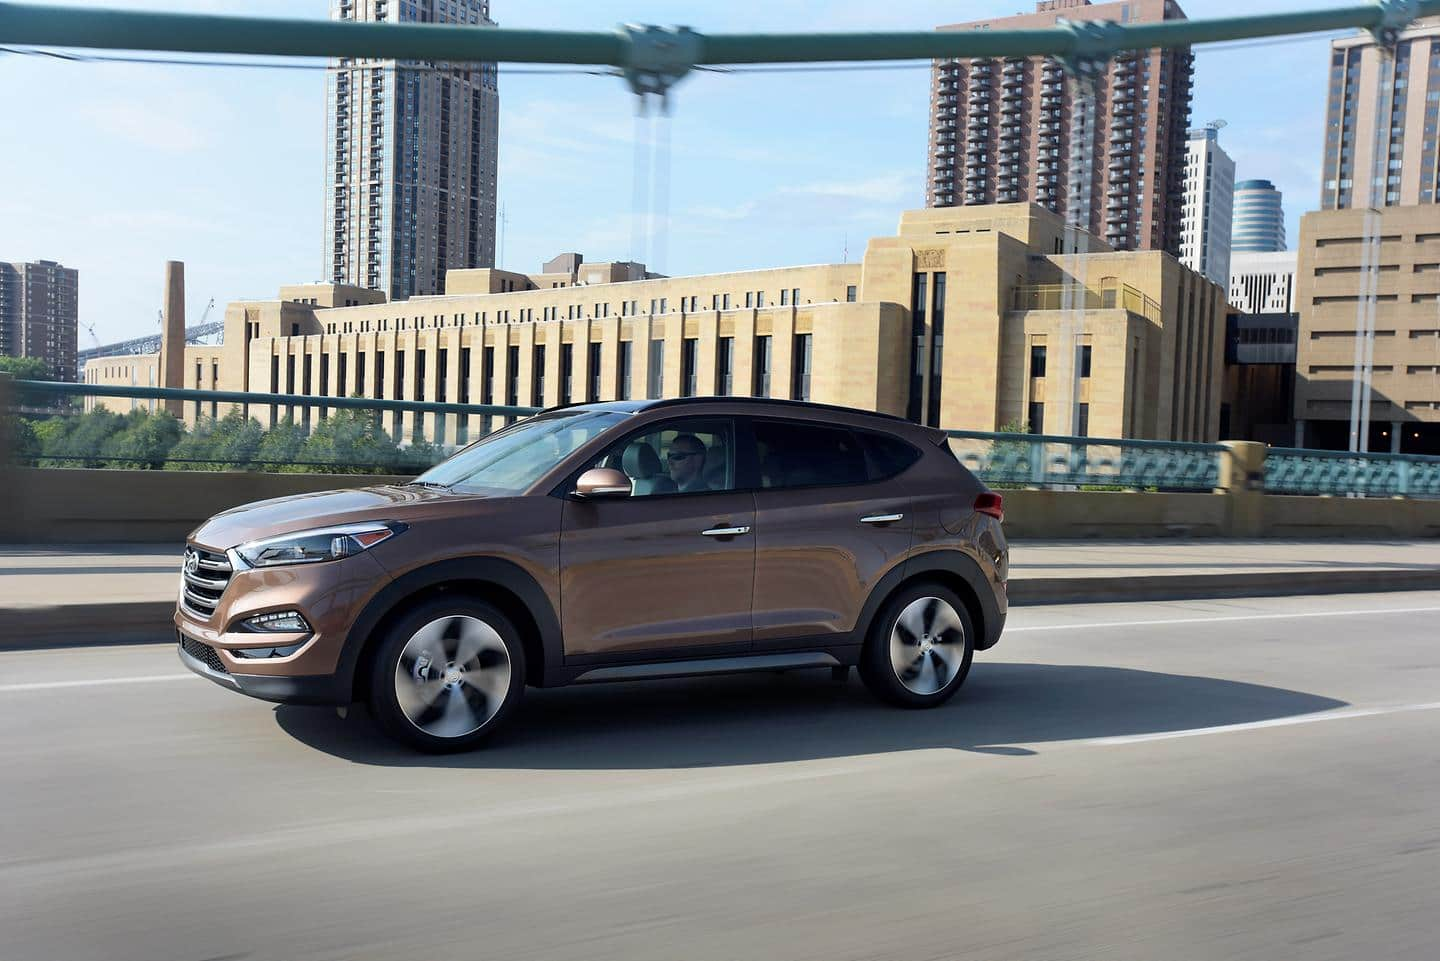 Hyundai Motor's Tucson Named Finalist for 2016 Green SUV of the Year